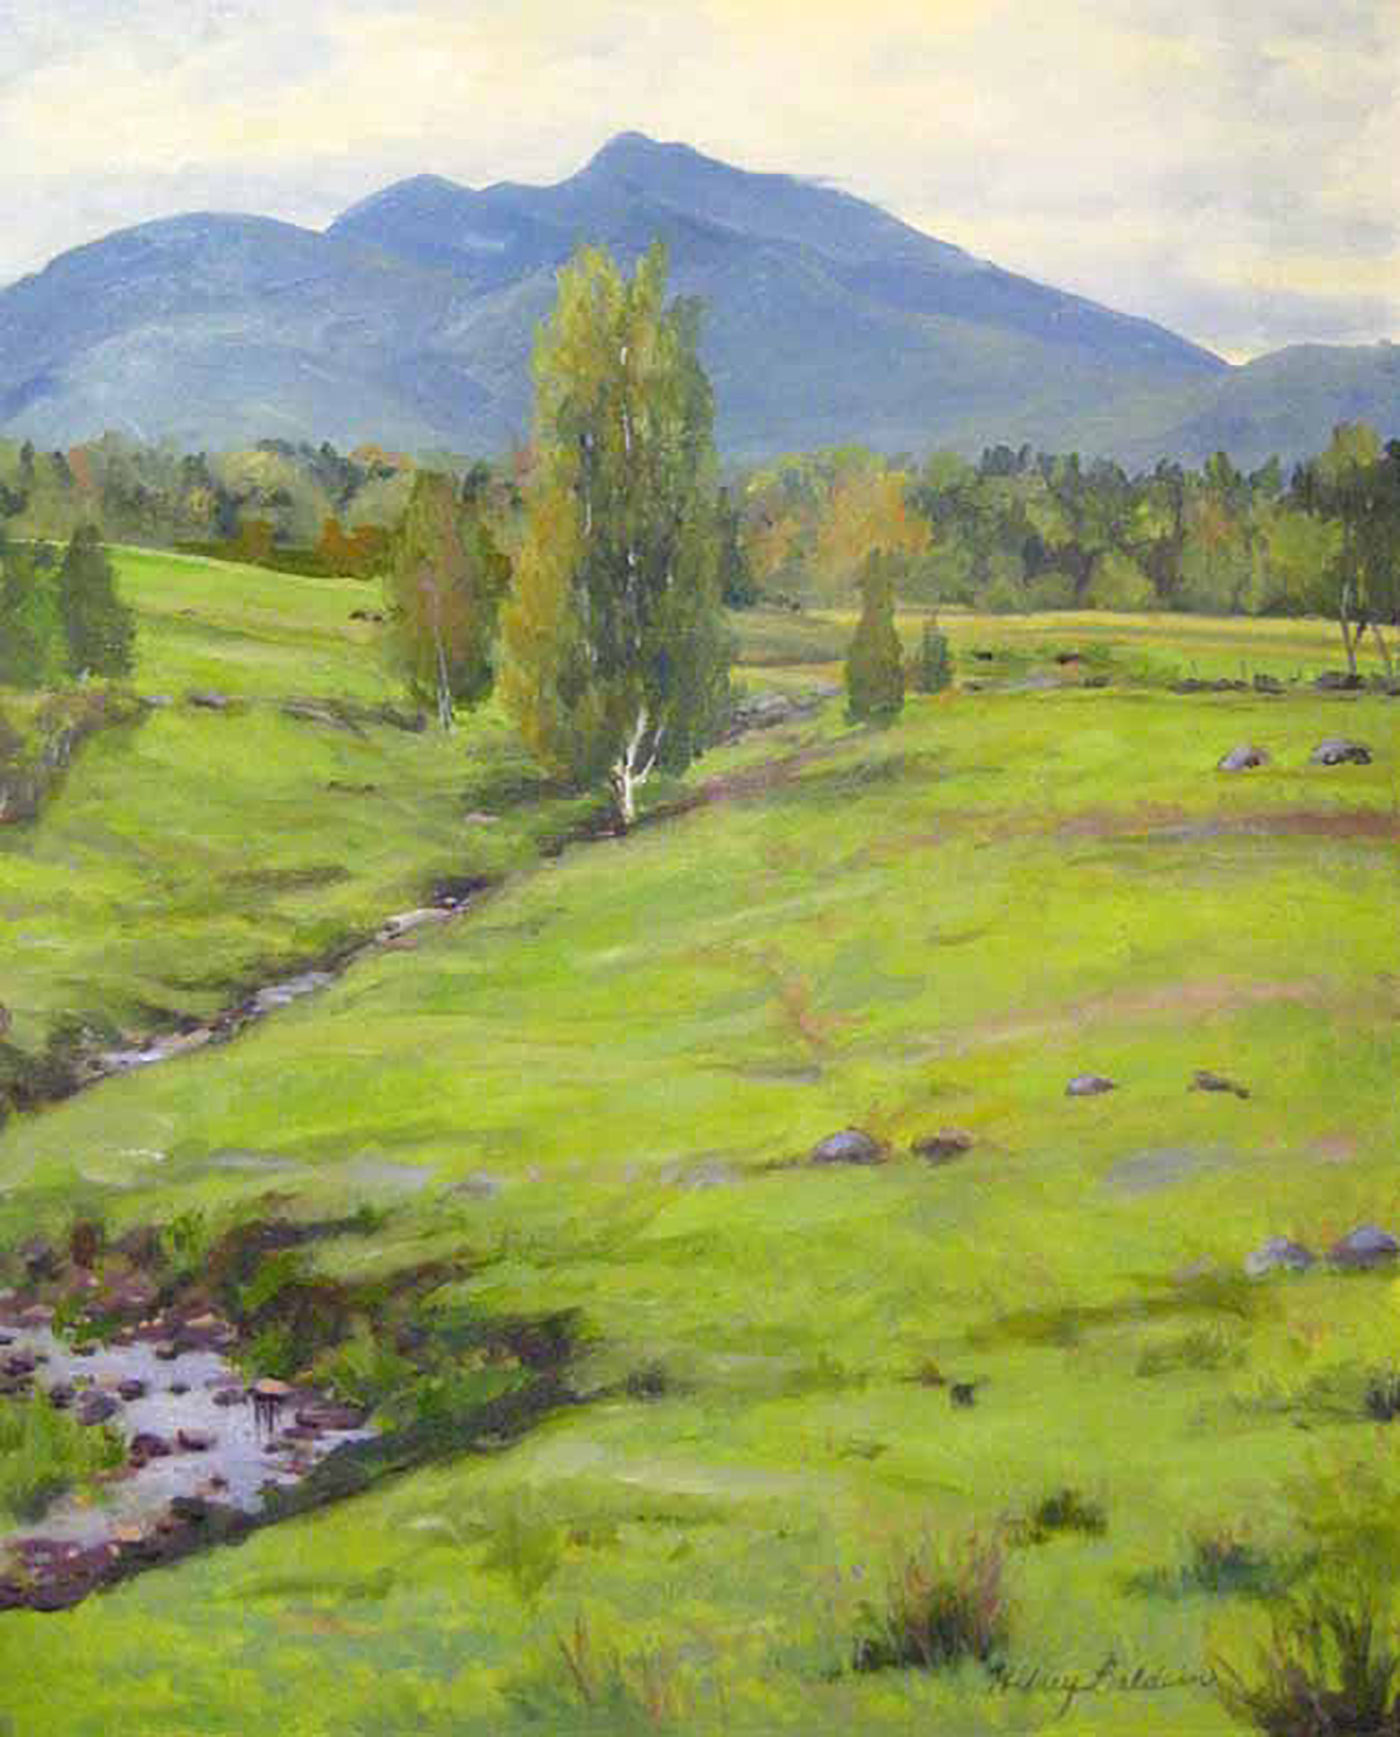 Landscape paintings at Renjeau Galleries